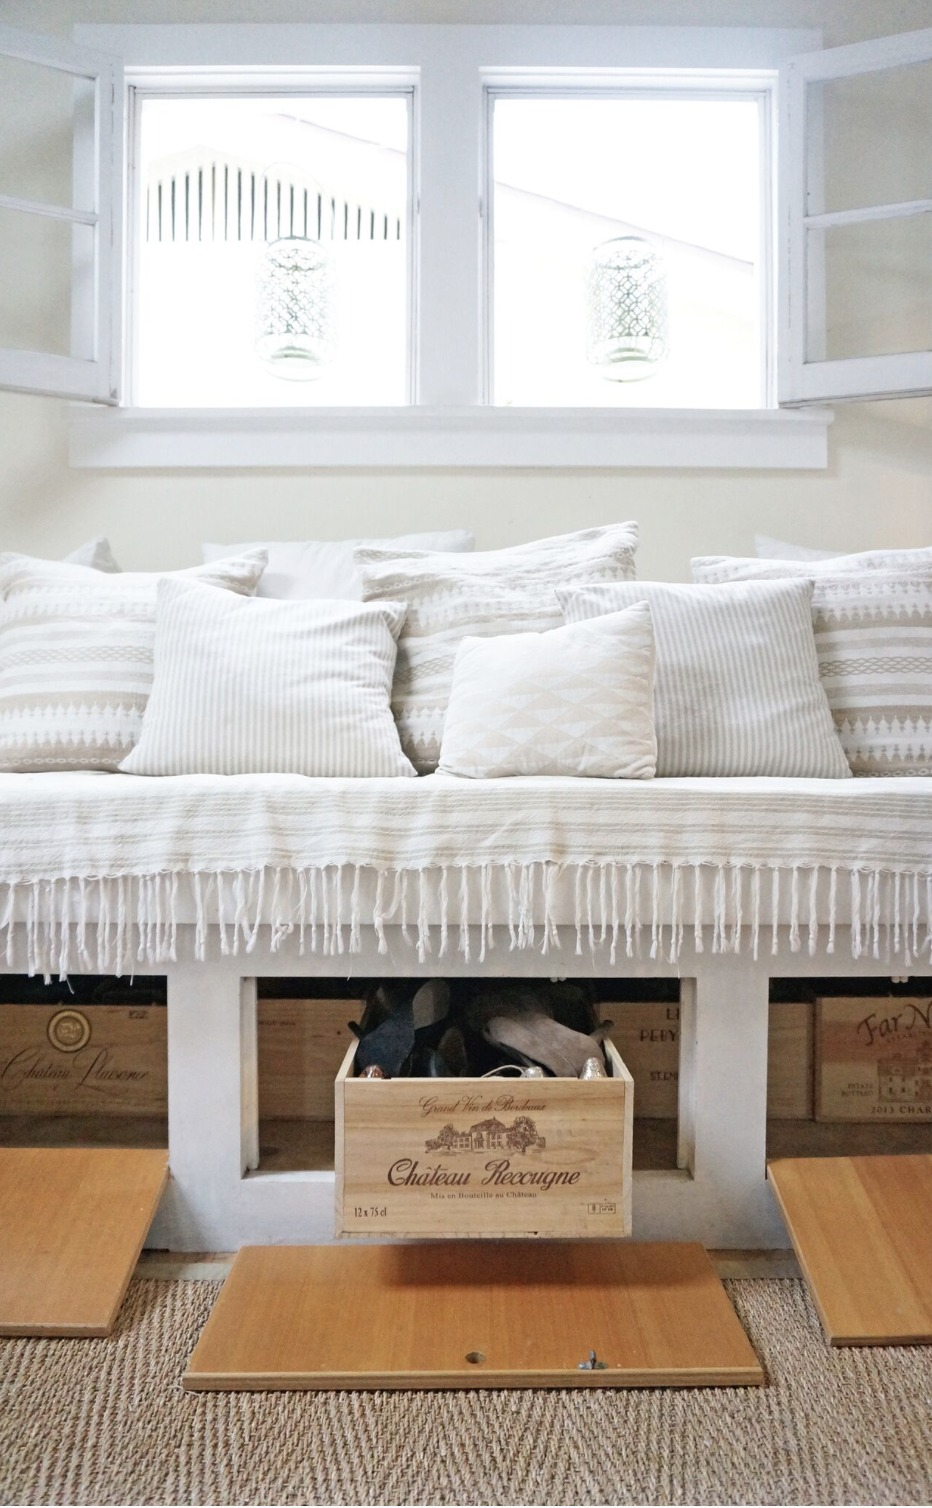 Small Space Living- Organizing Tips